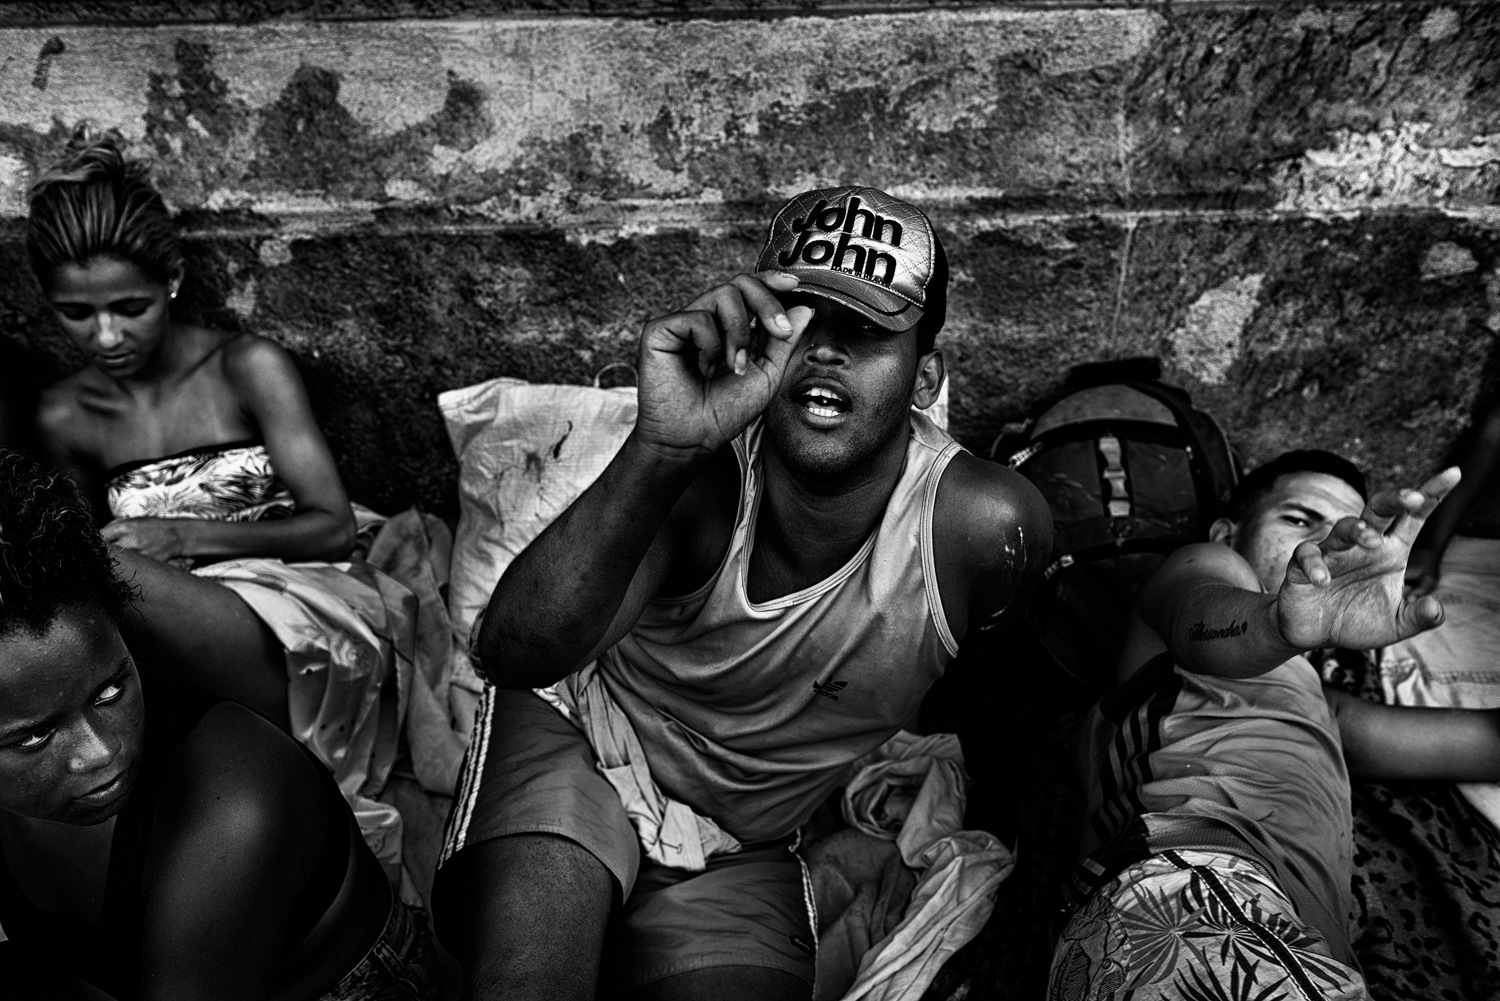 Recently evicted from an abandoned lot in downtown Rio, a now homeless man begins to spontaneosuly pose for a portrait.